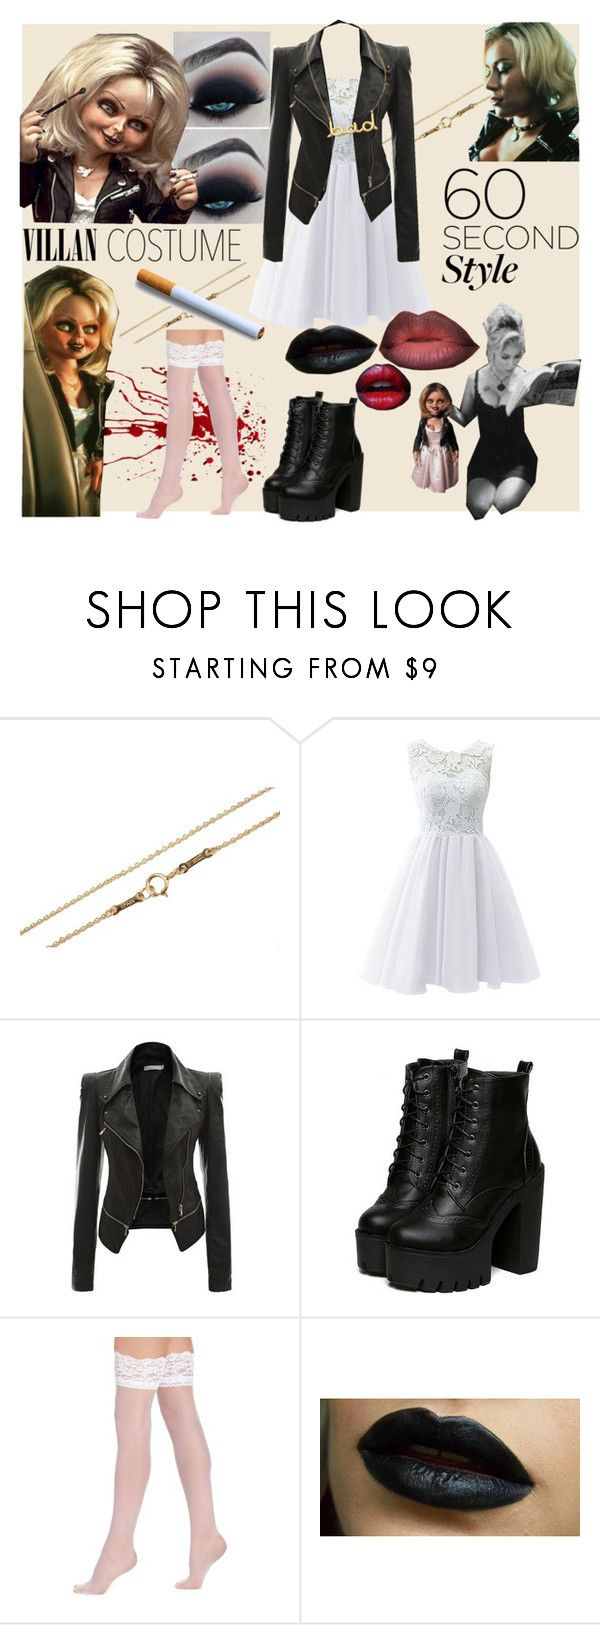 """""""Bride of Chucky"""" by soamazinq on Polyvore featuring Tiffany & Co., Berkshire, Meredith Hahn, Halloween, 60secondstyle and villaincostume. FOLLOW @up2marz for more pins"""